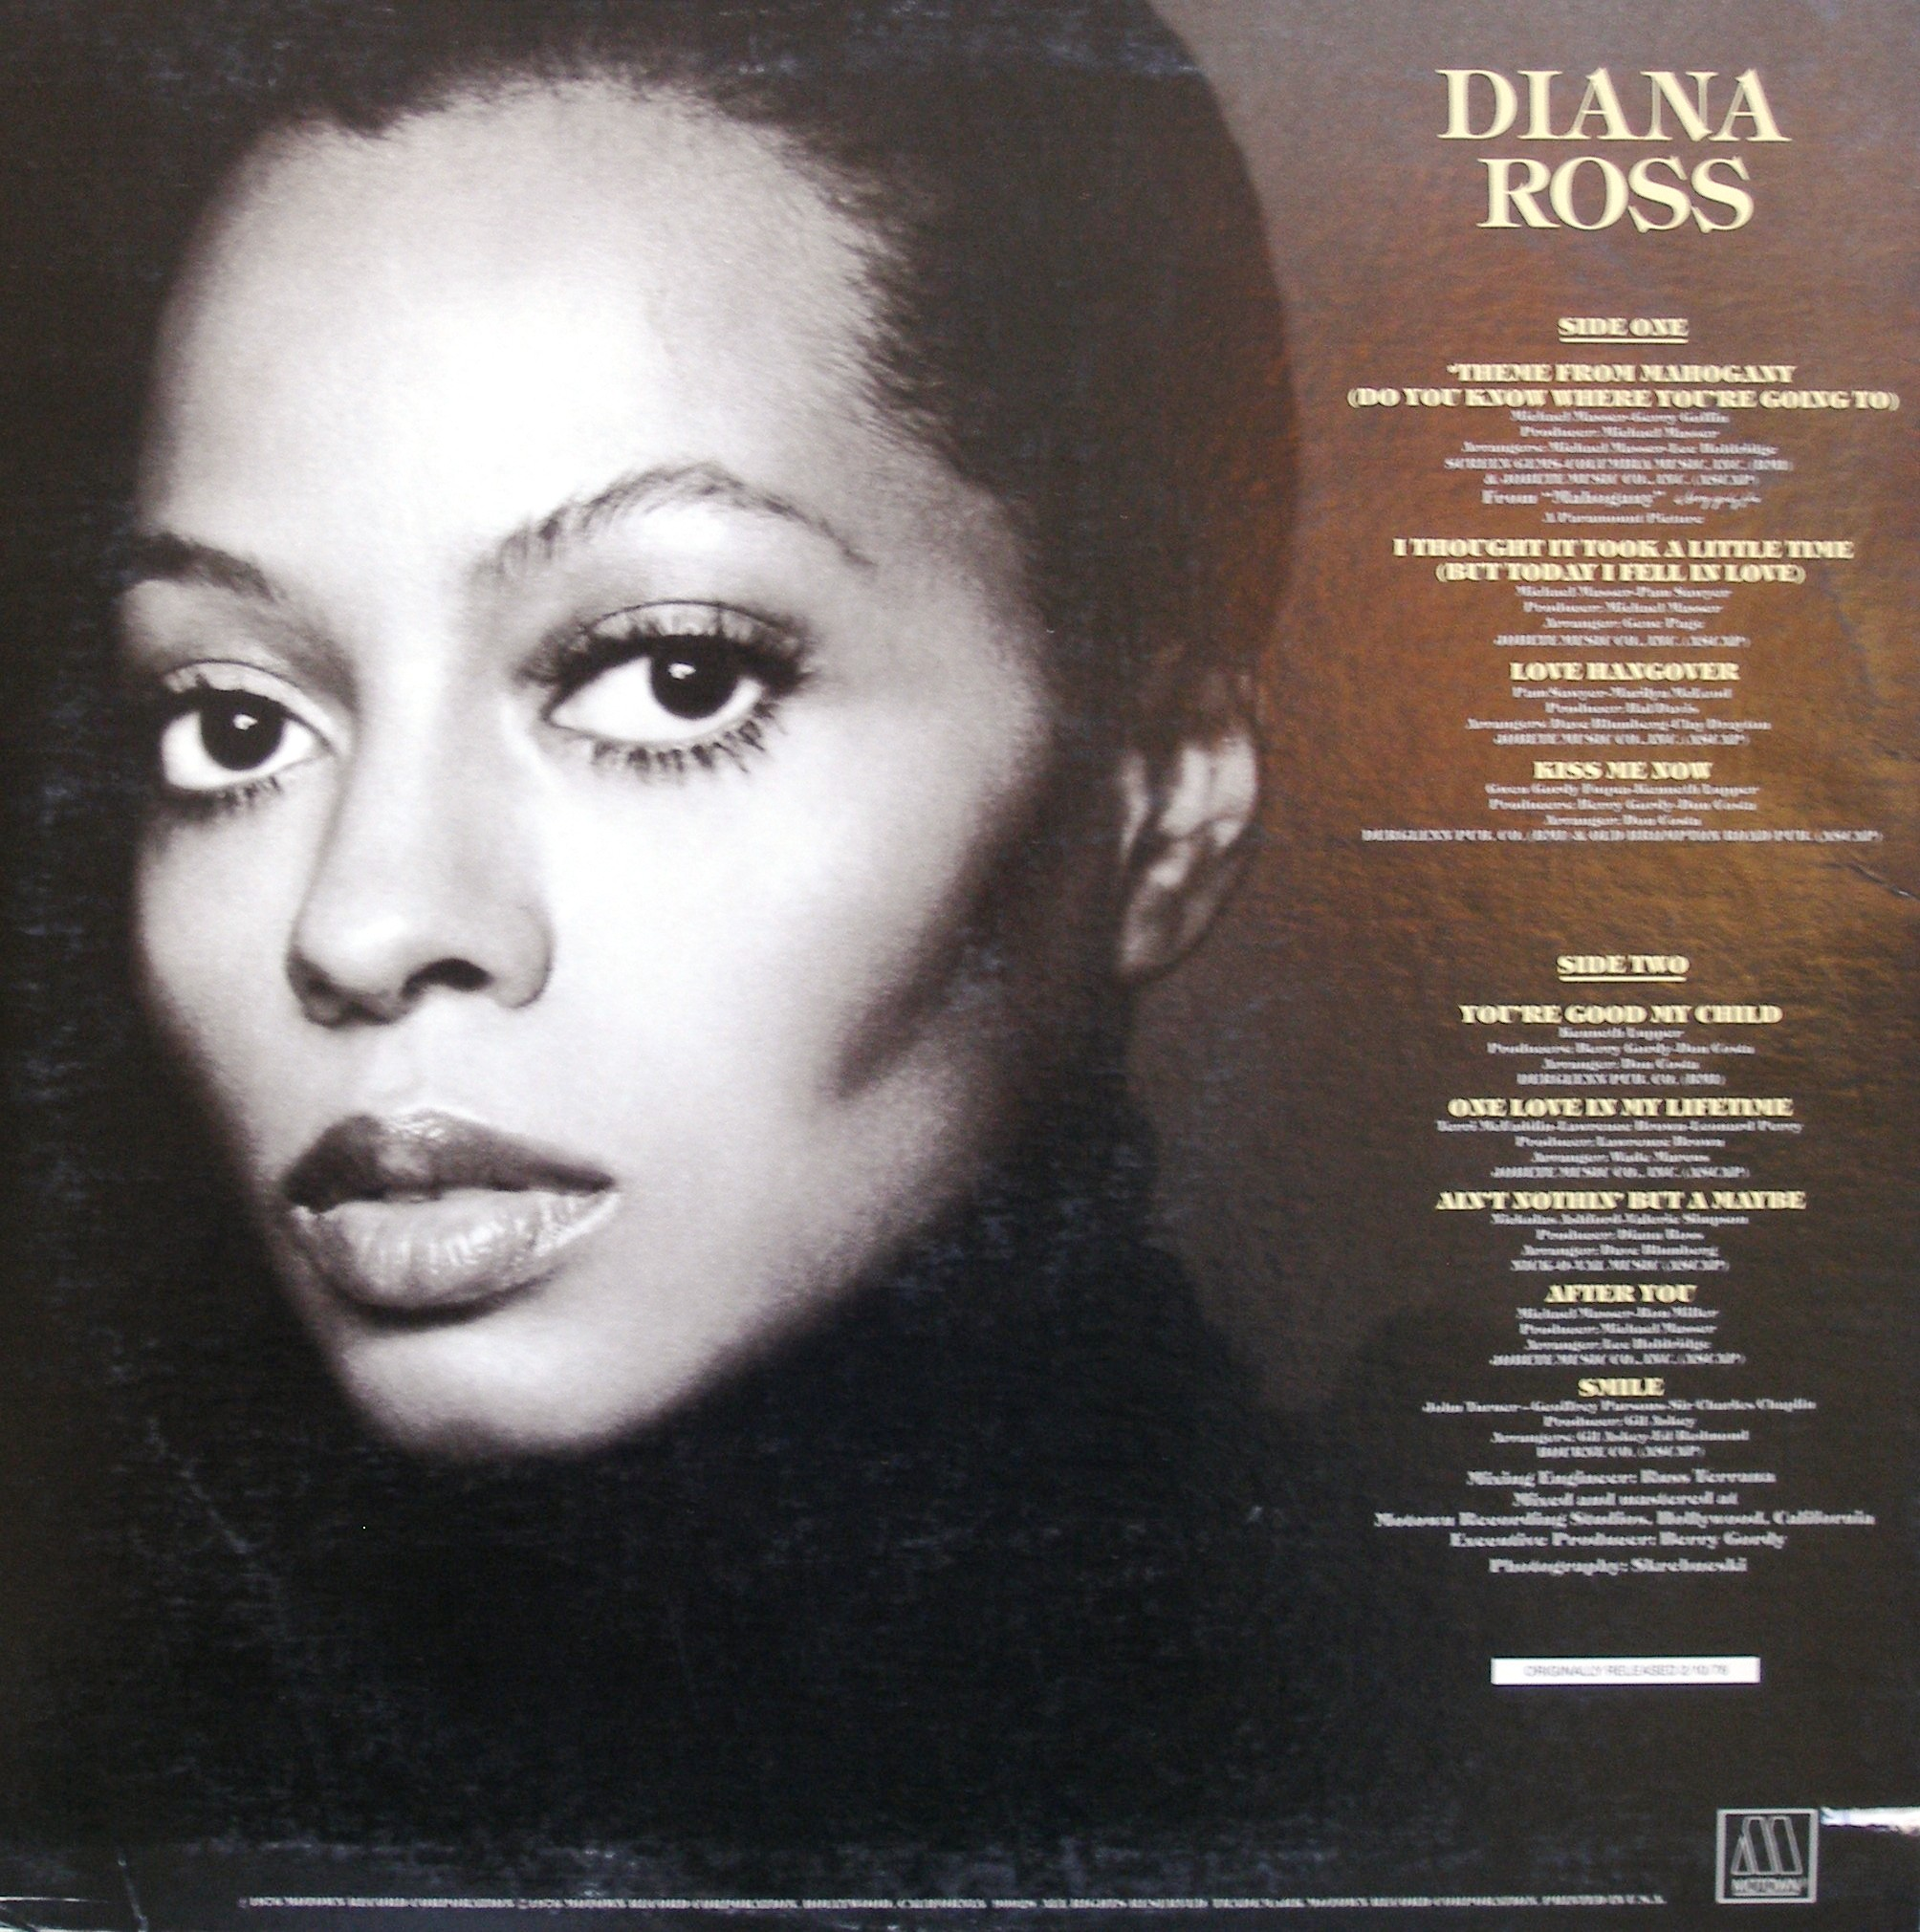 Diana-Ross-1976-lp-back-cover